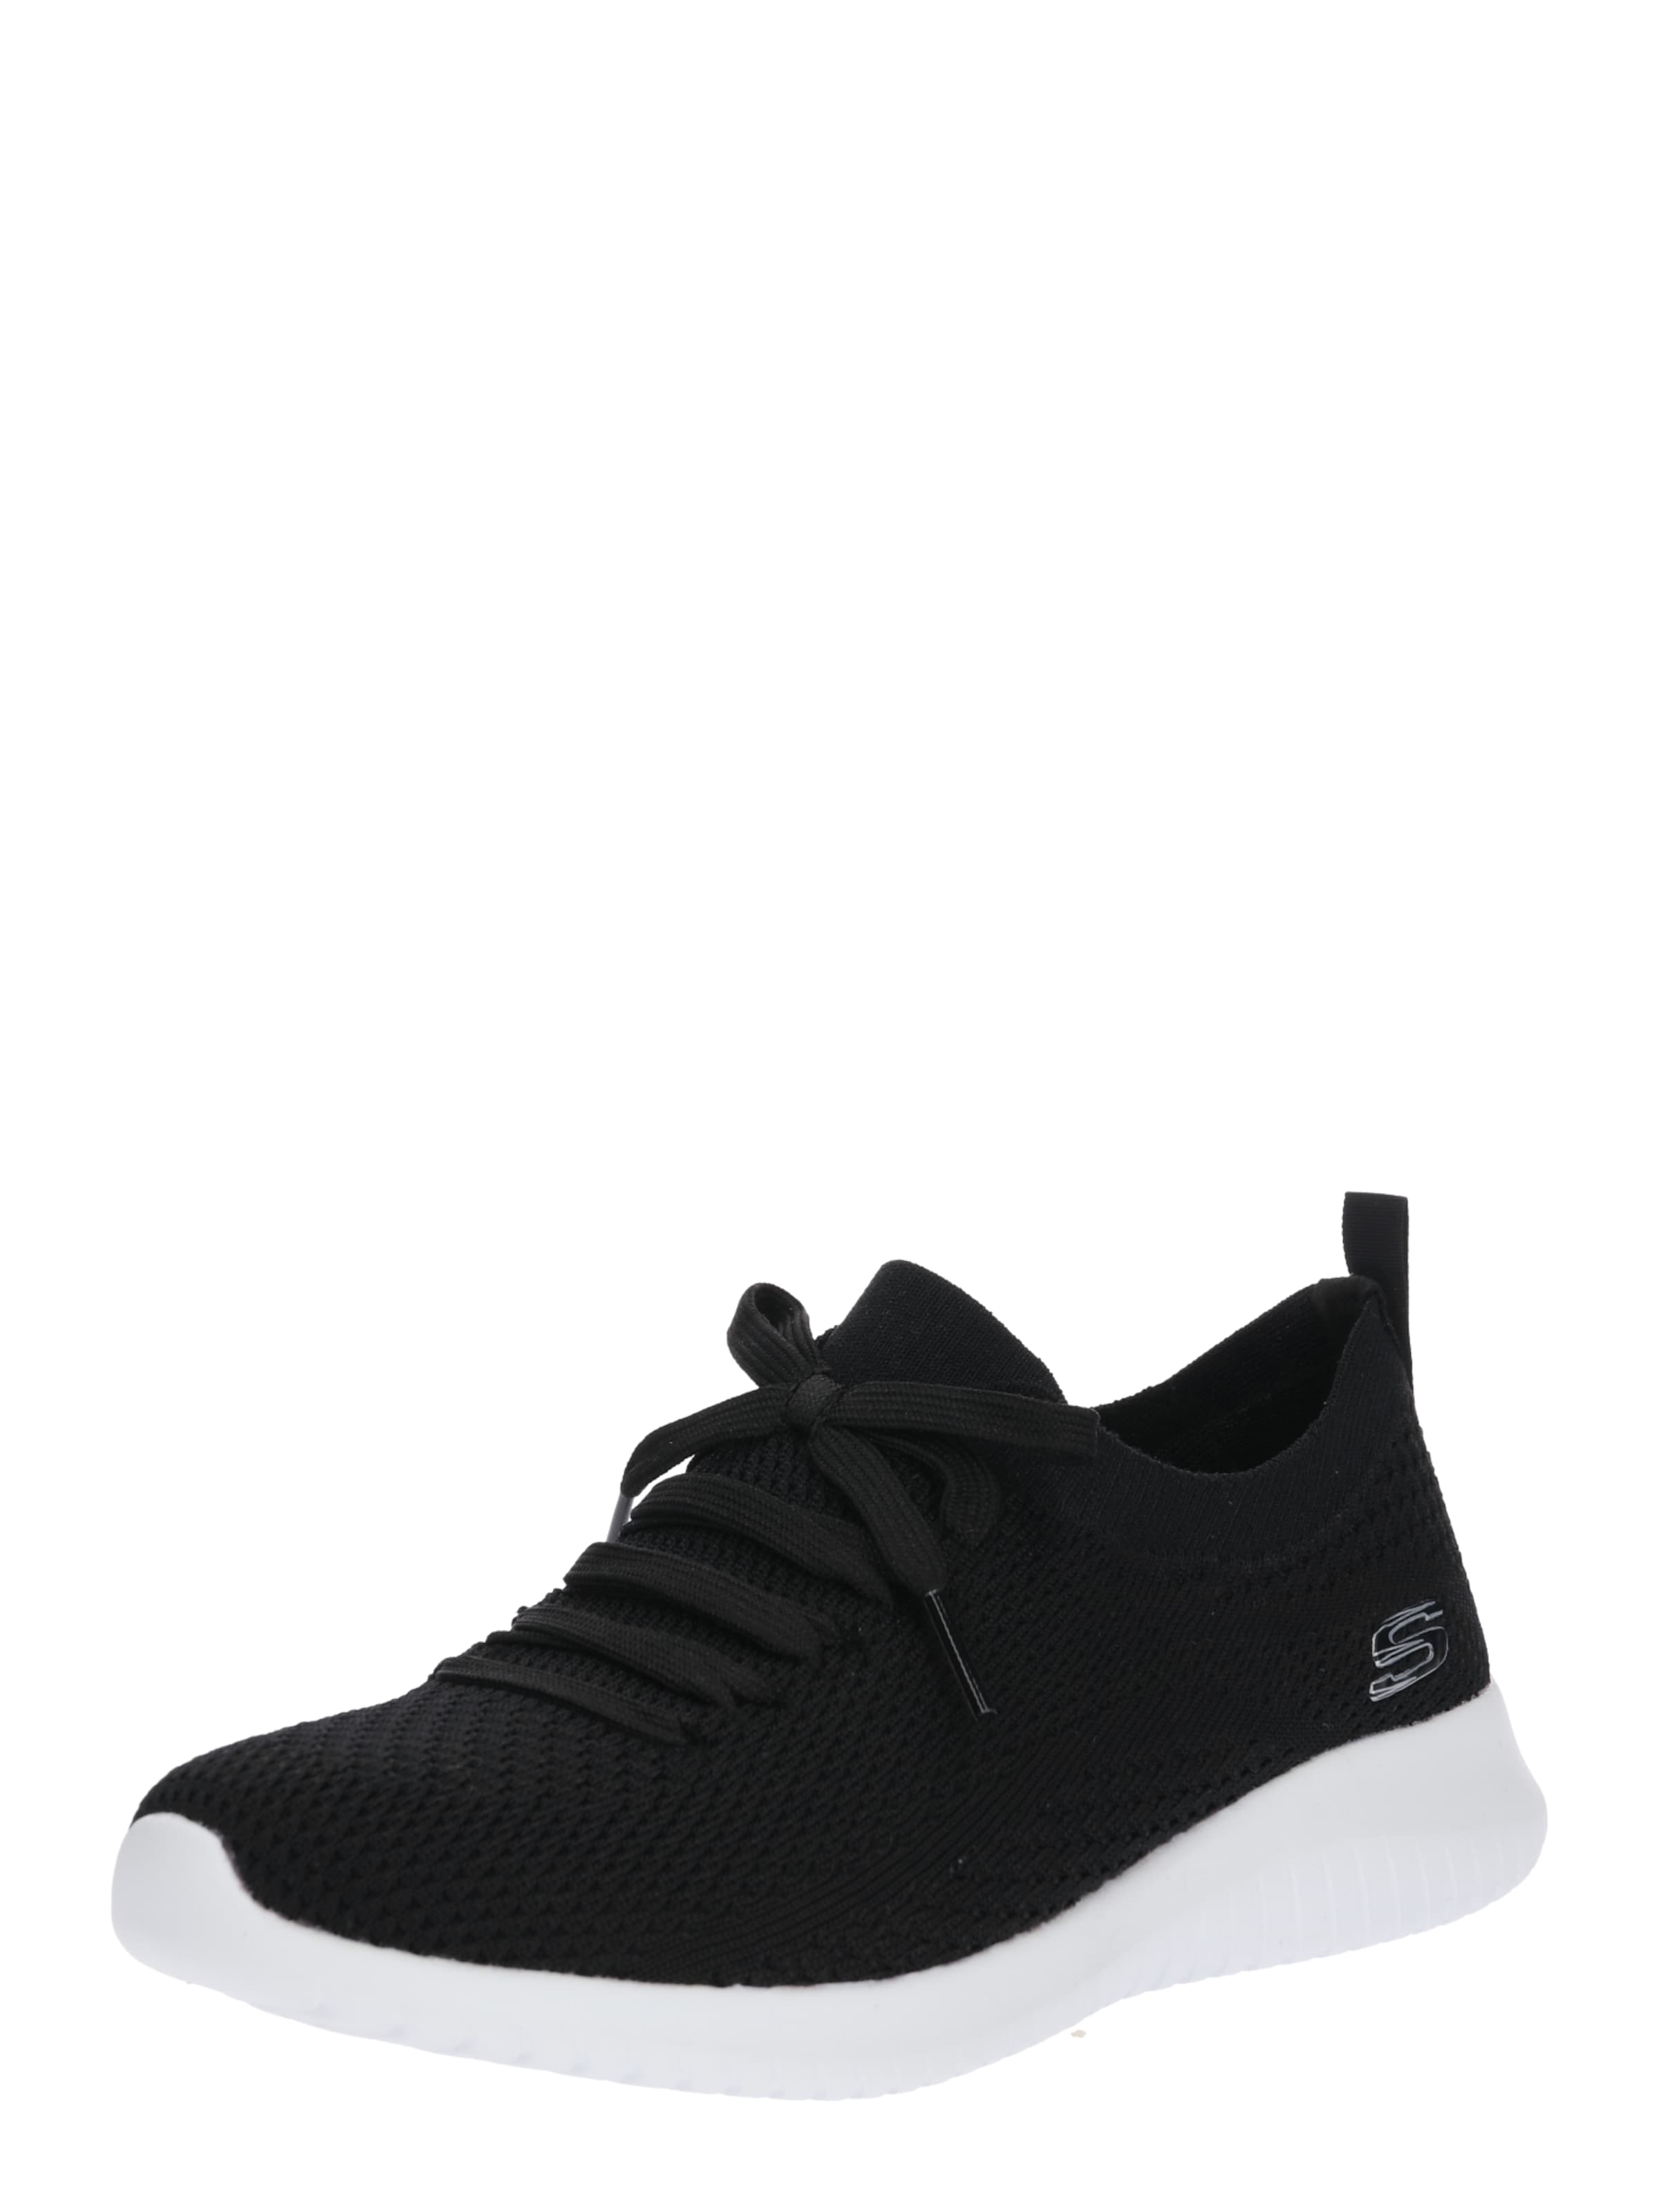 SKECHERS Sneaker  Ultra Flex - Statements